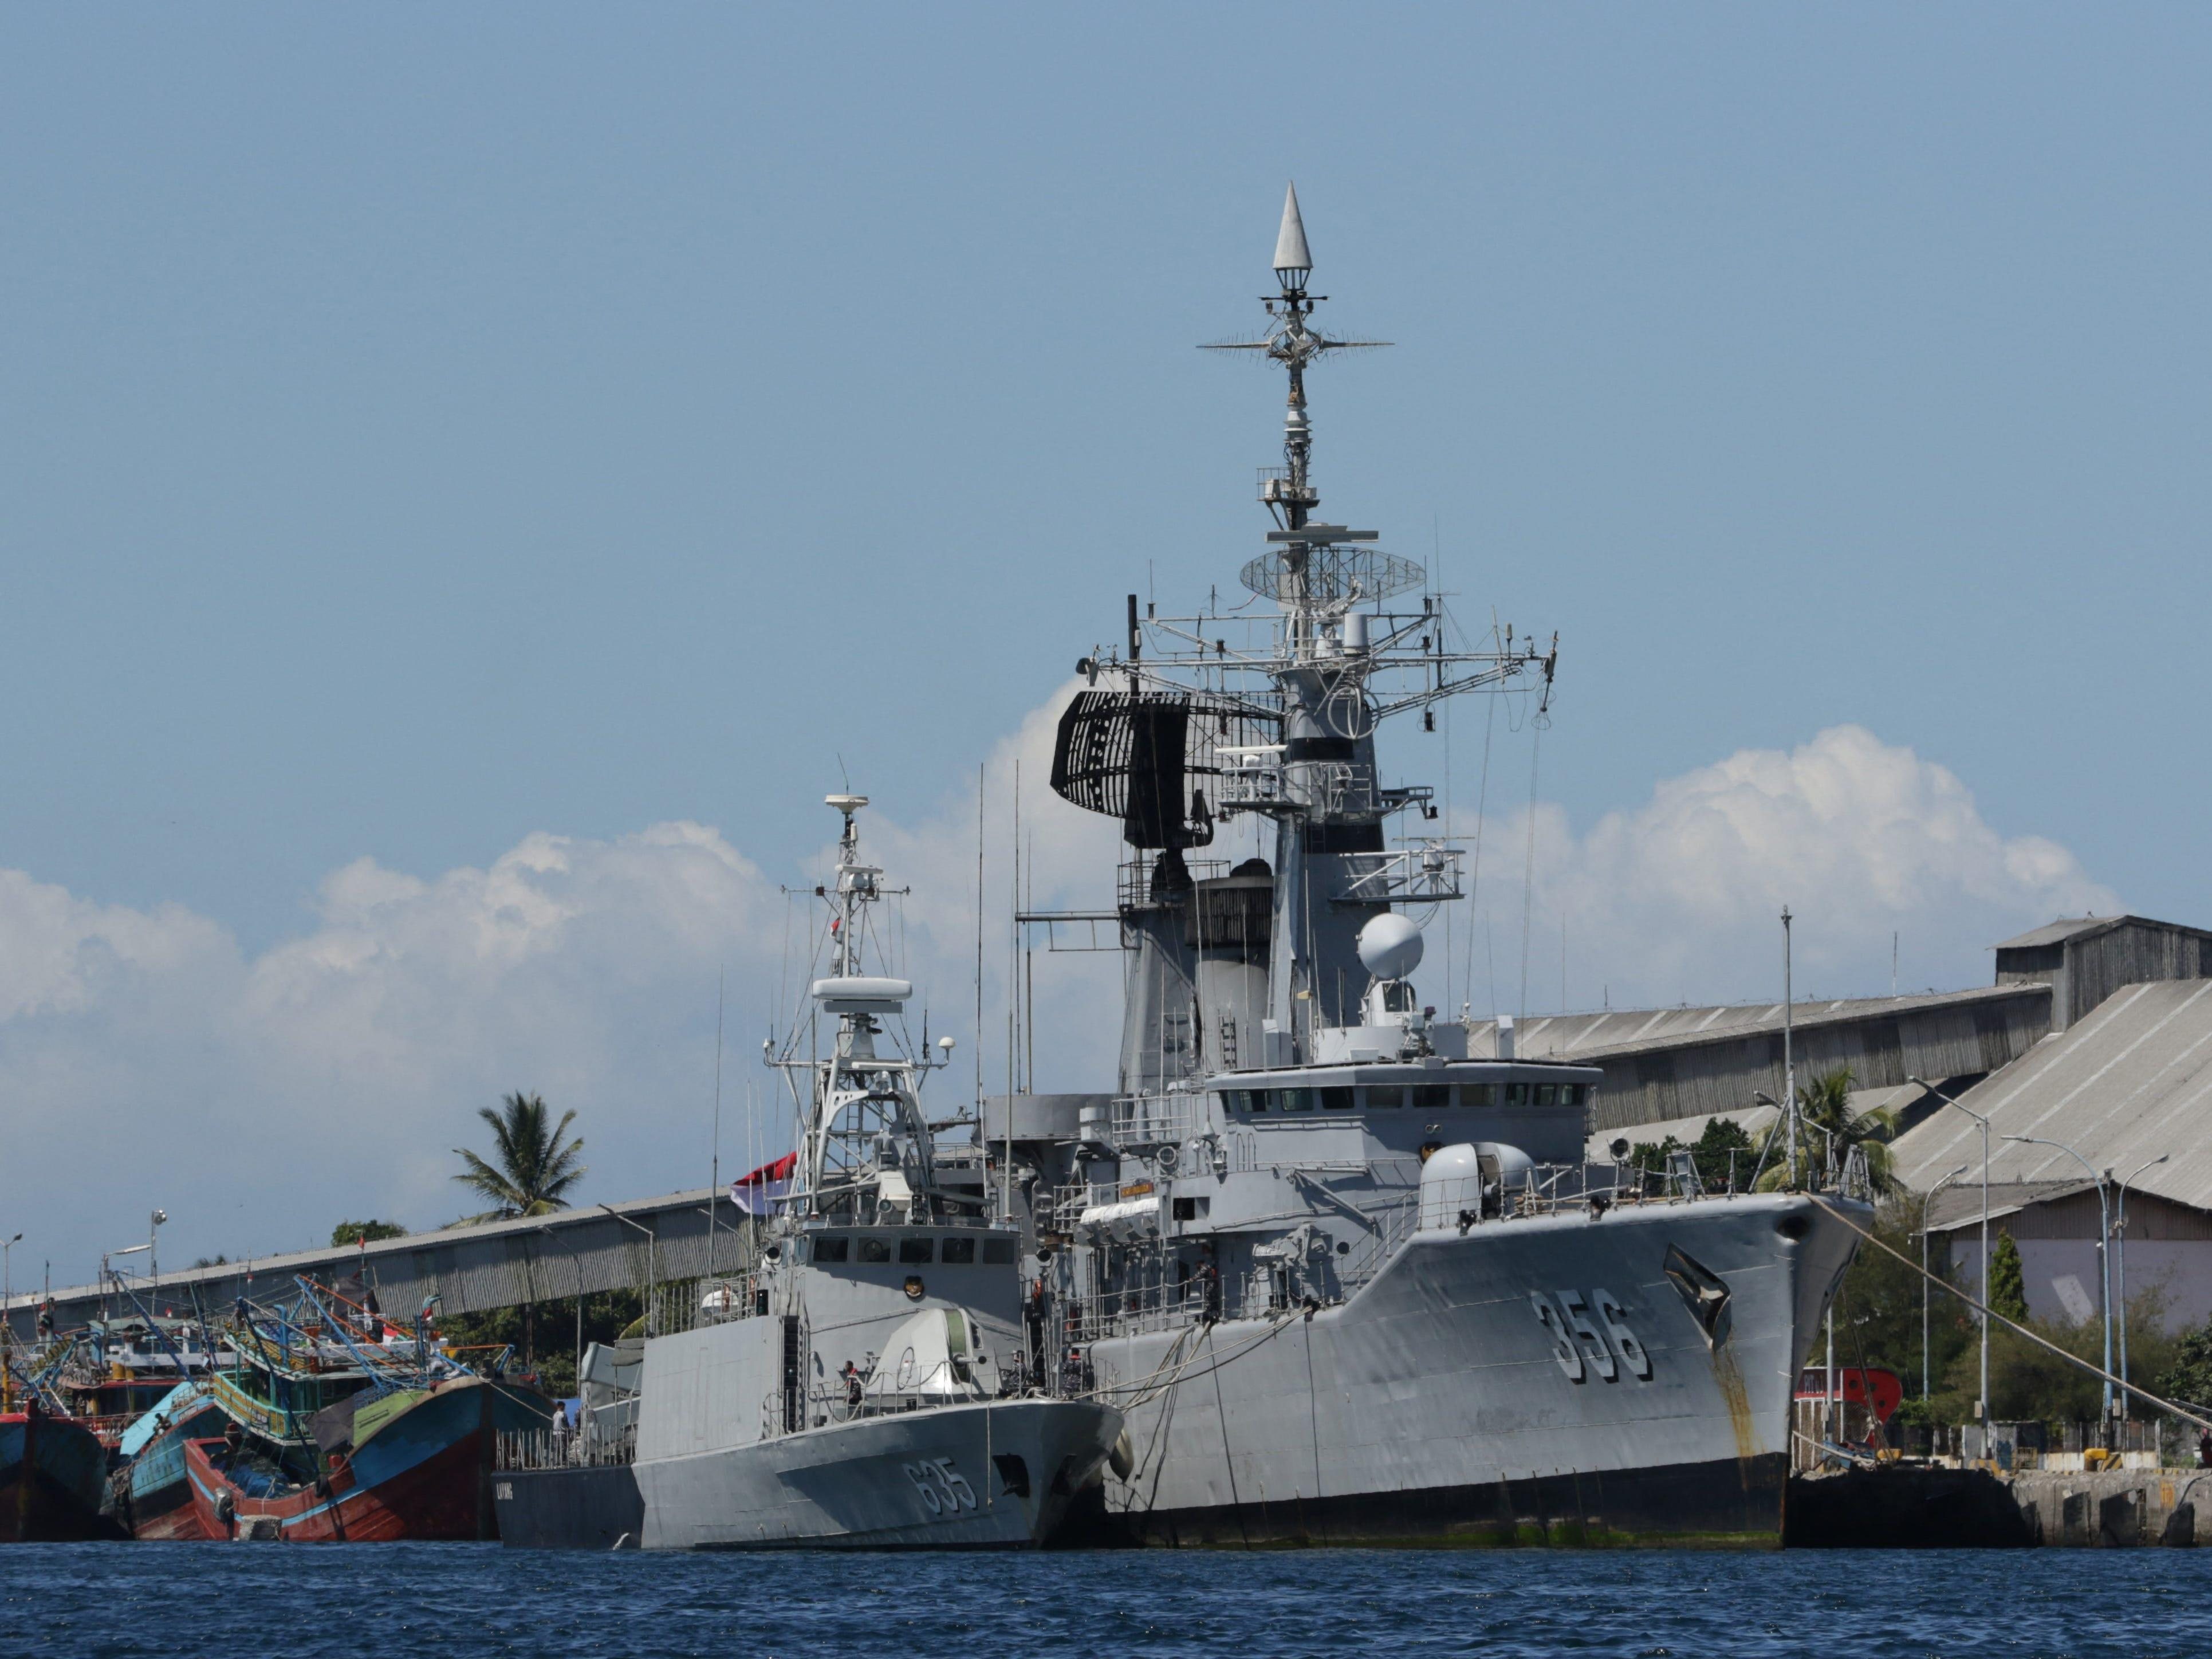 Countries from around the world are chipping in to help find Indonesia's missing naval submarine